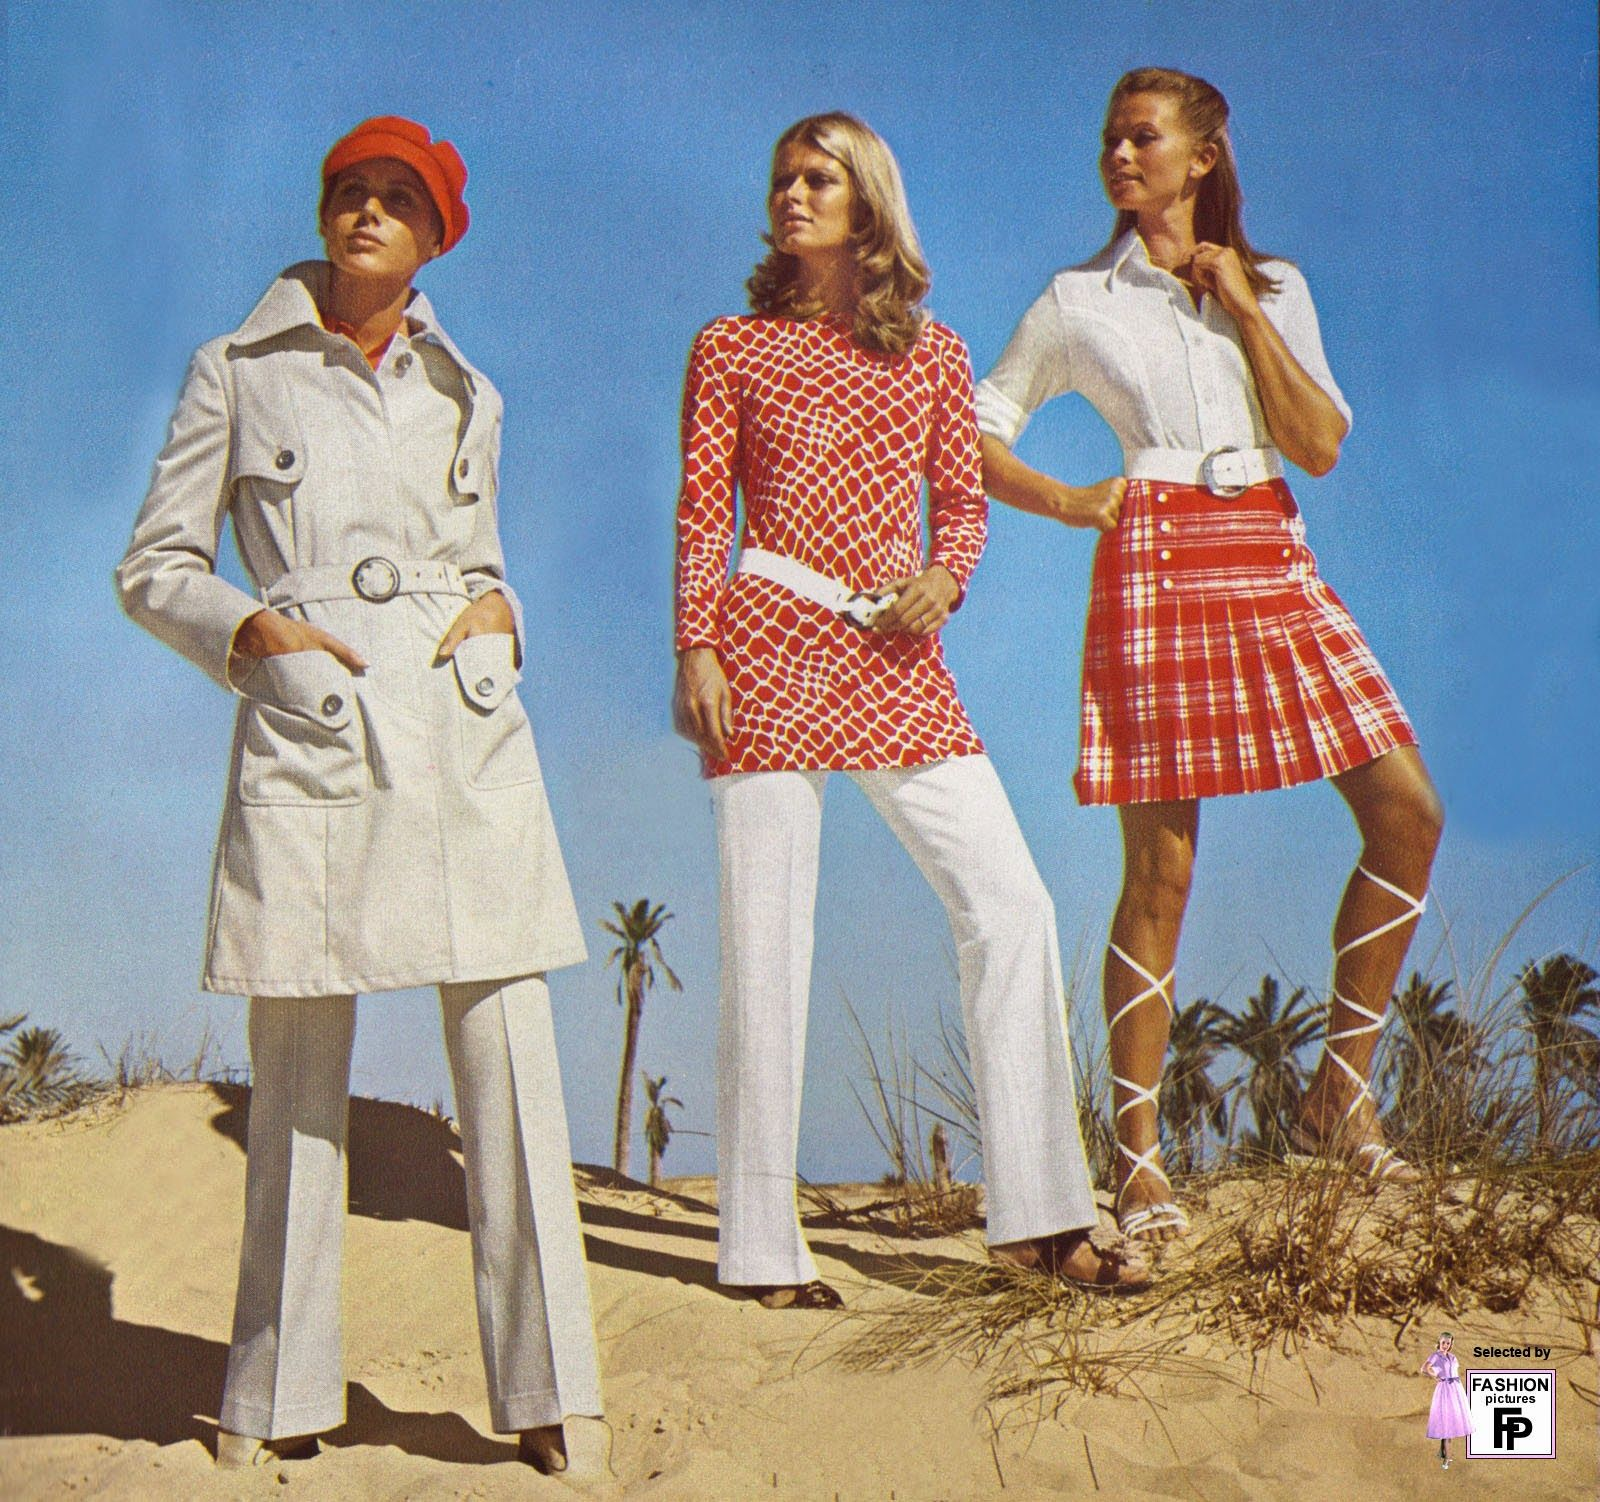 Vintage Everyday 50 Awesome And Colorful Photoshoots Of The 1970s Fashion And Style Trends